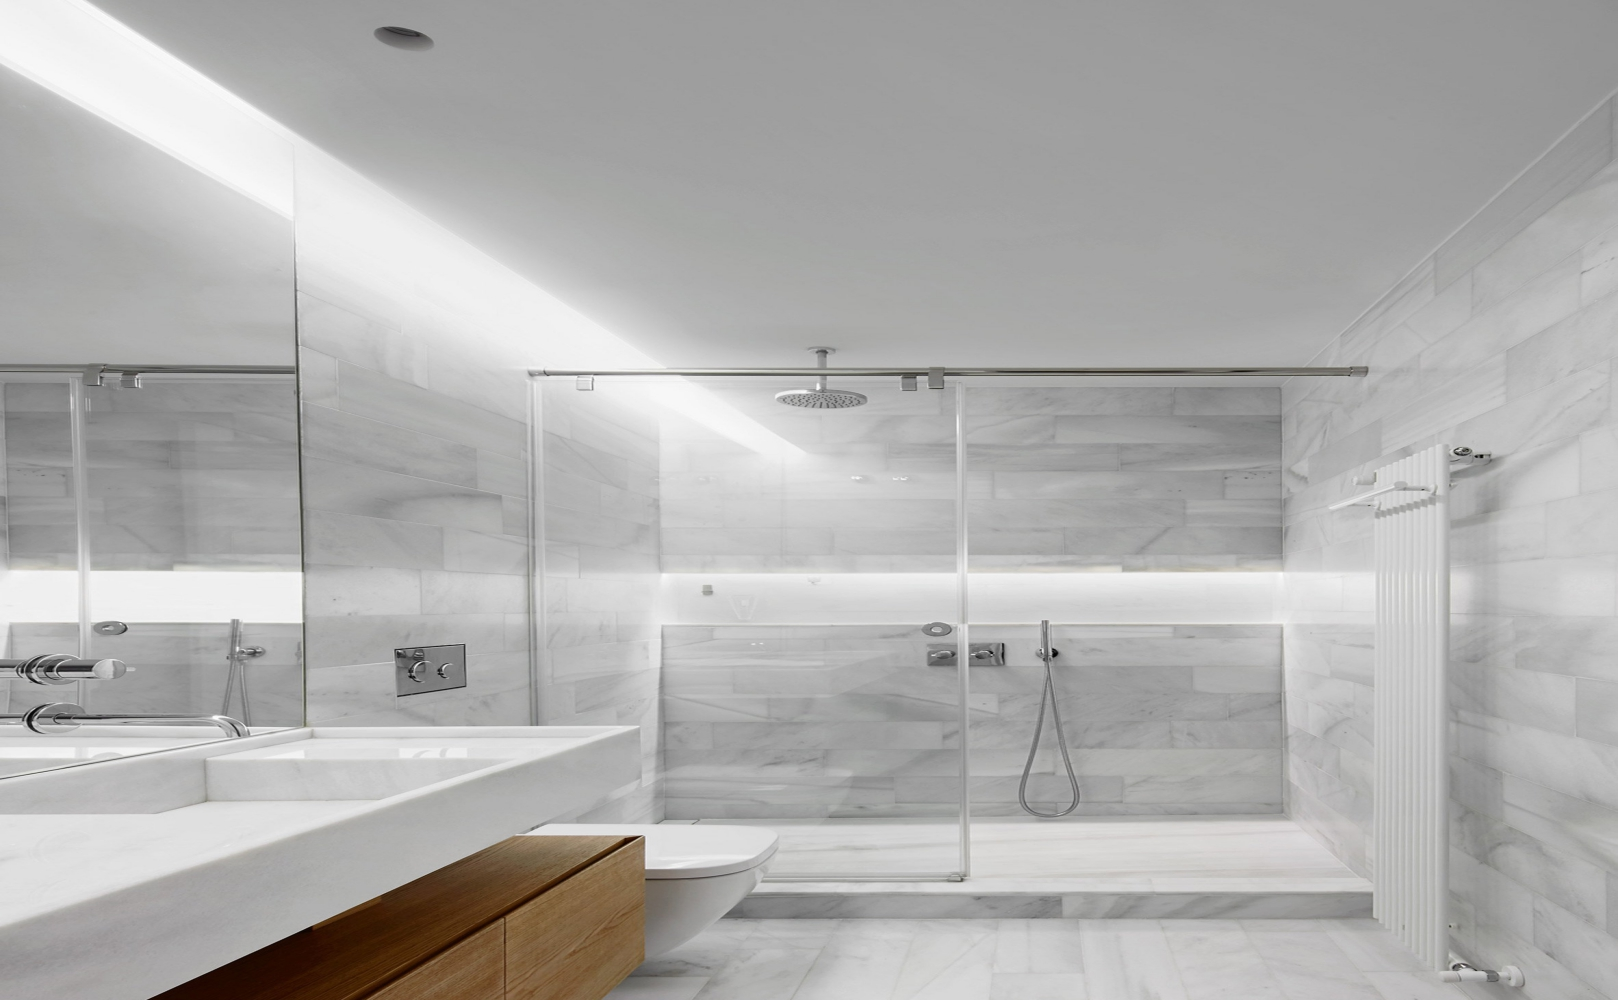 xxhouse-odonnell-lucas-y-hernandez-gil-residential-interiors-madrid-spain_dezeen_2364_col_14